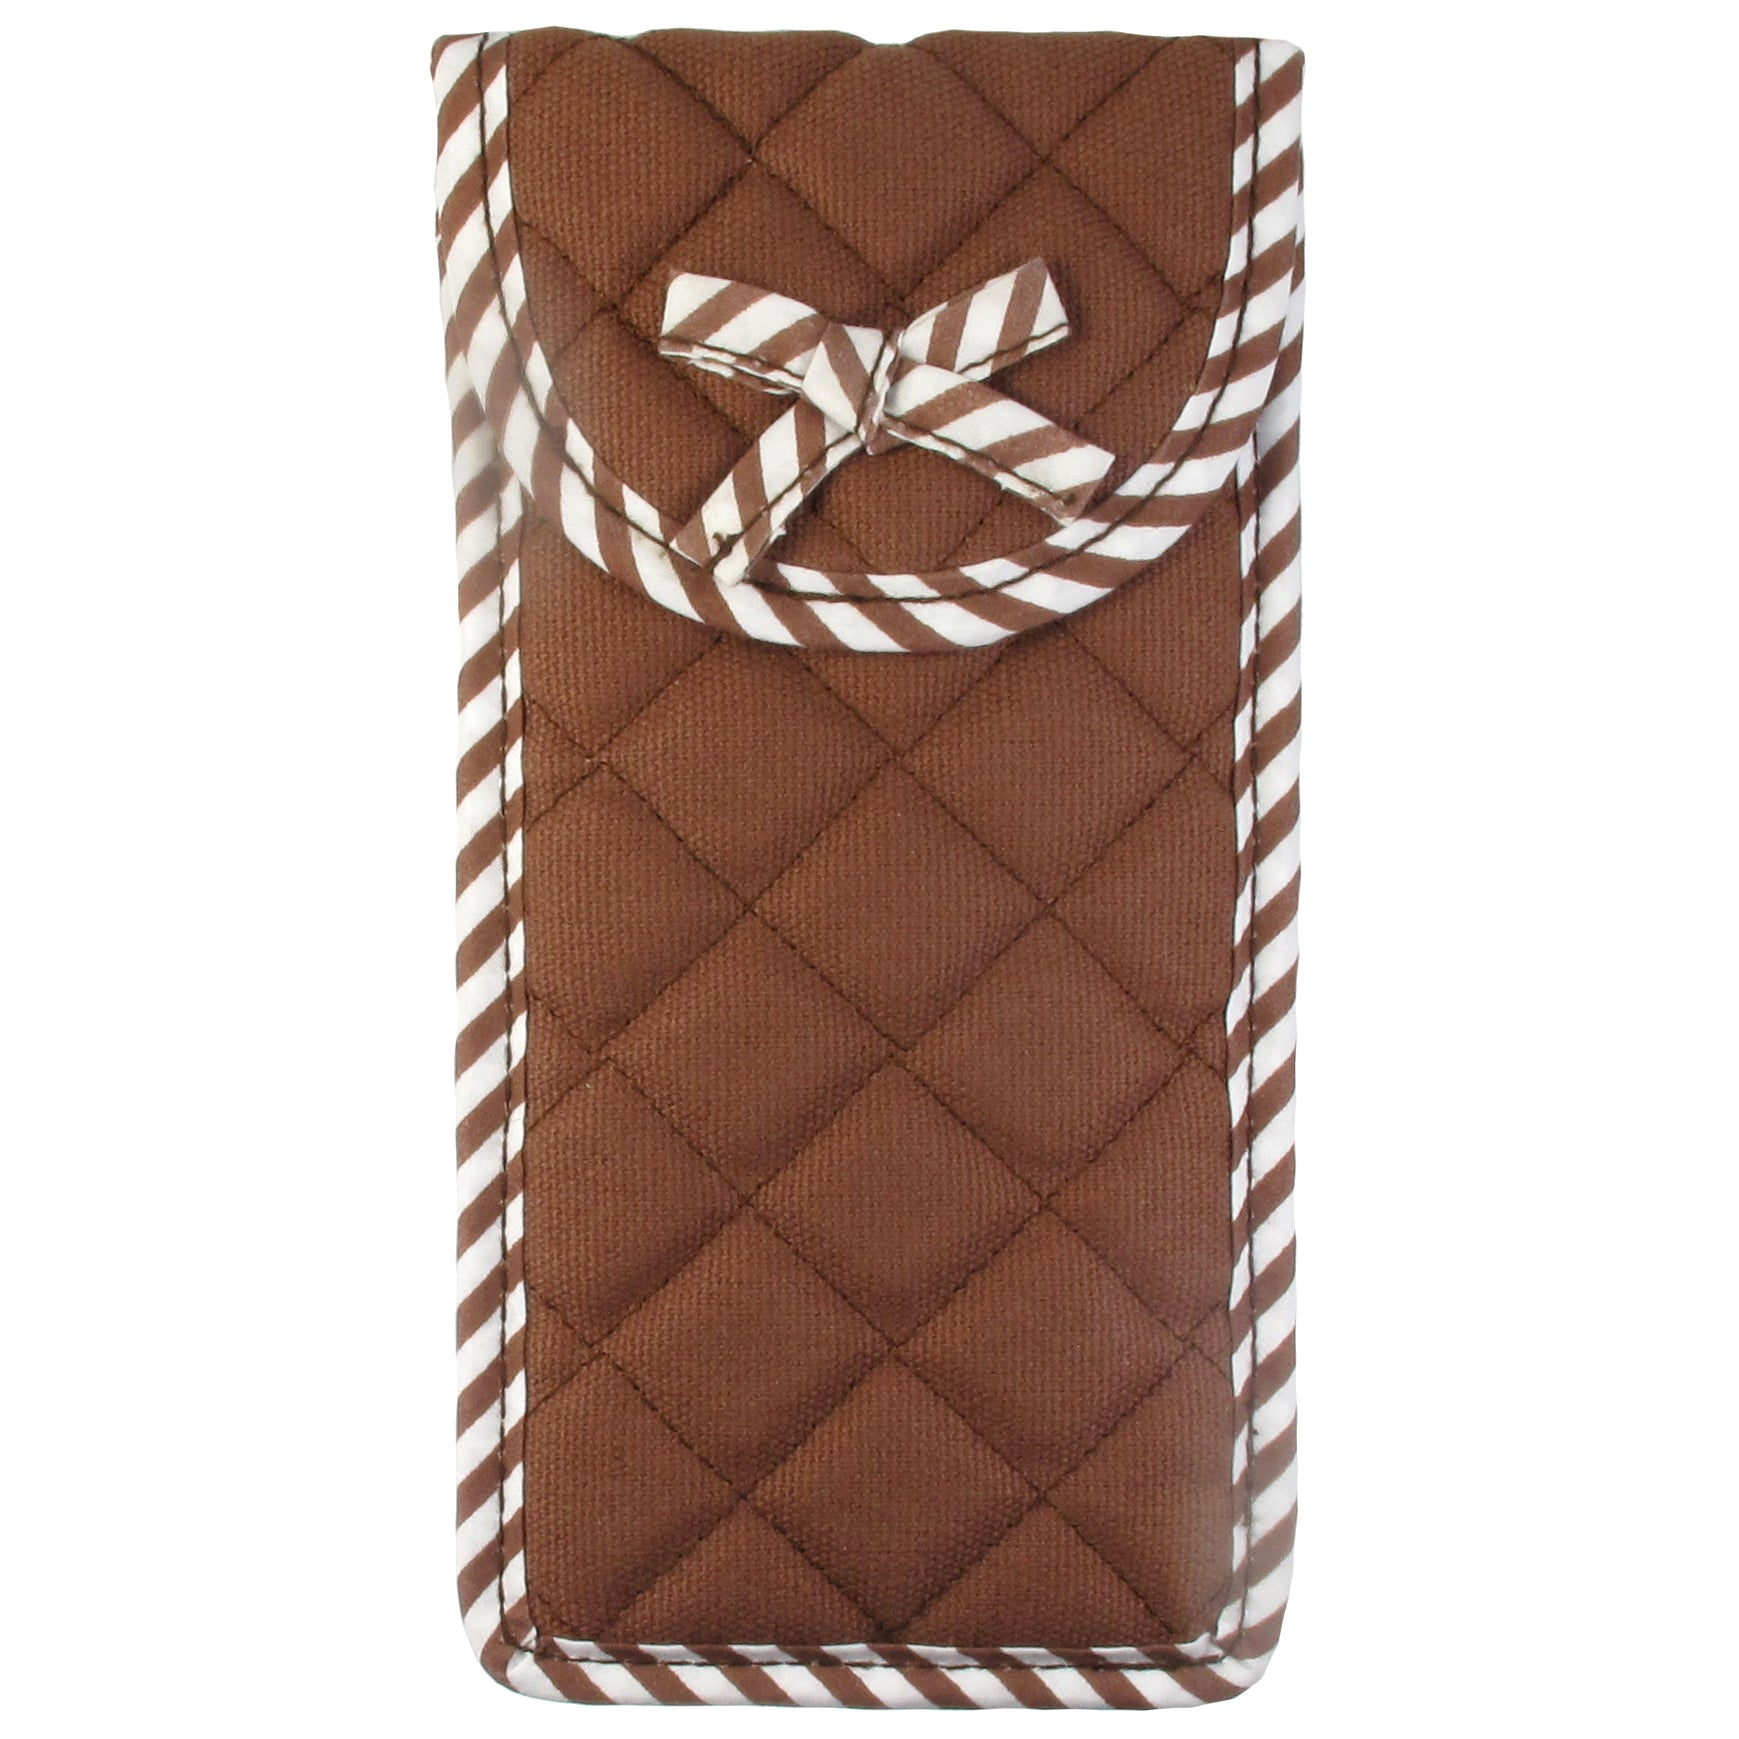 Quilted Canvas Soft Eyeglass Case, Brown